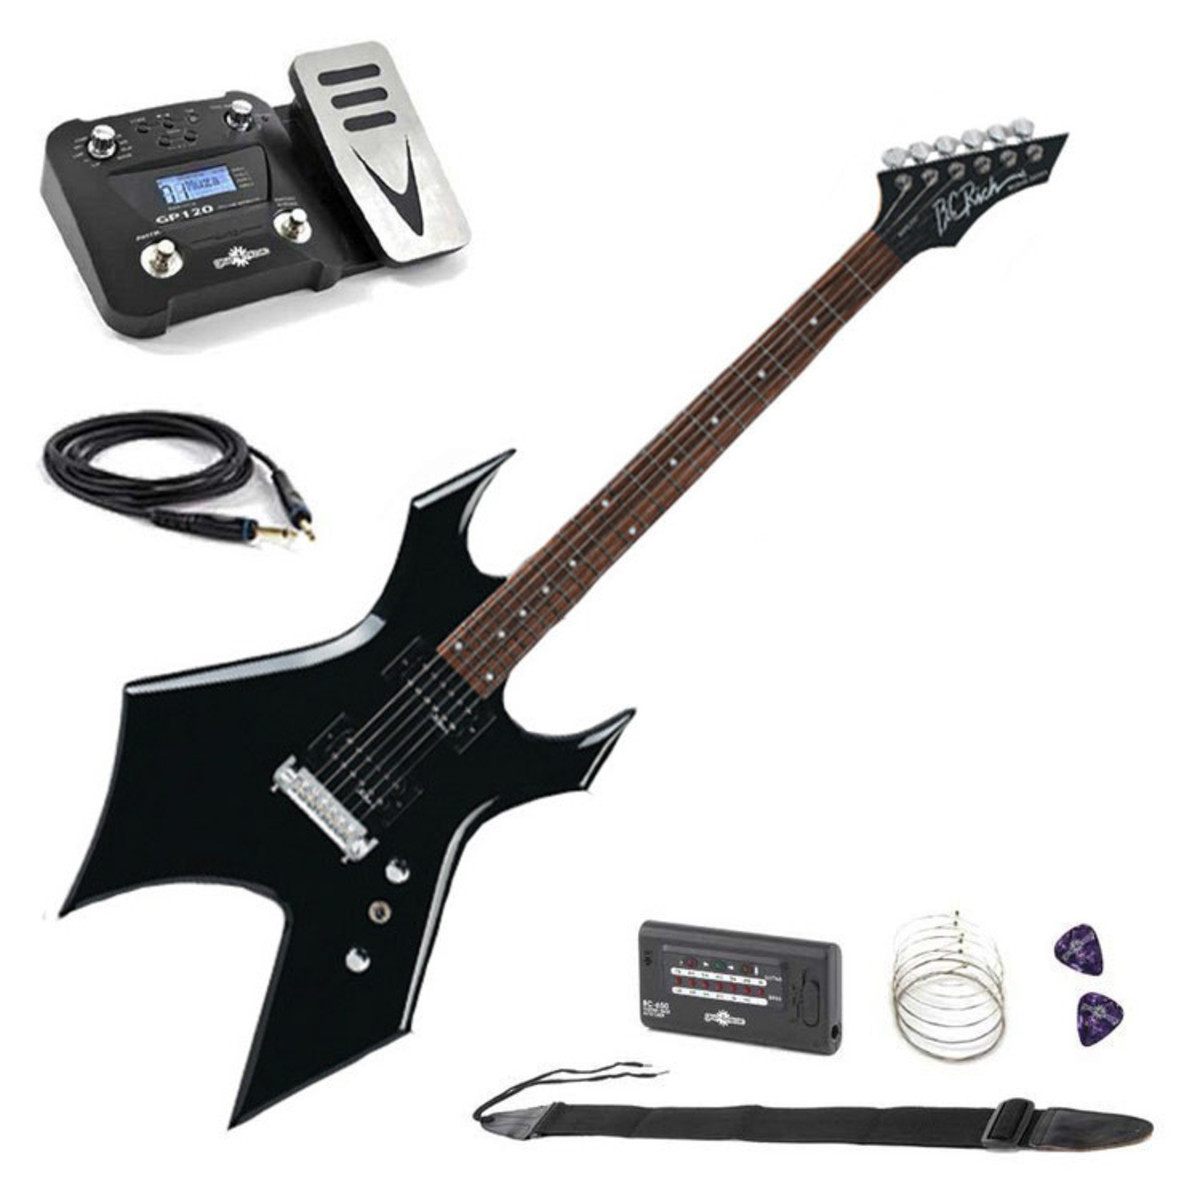 bc rich warlock one guitar onyx black with multi fx pedal. Black Bedroom Furniture Sets. Home Design Ideas